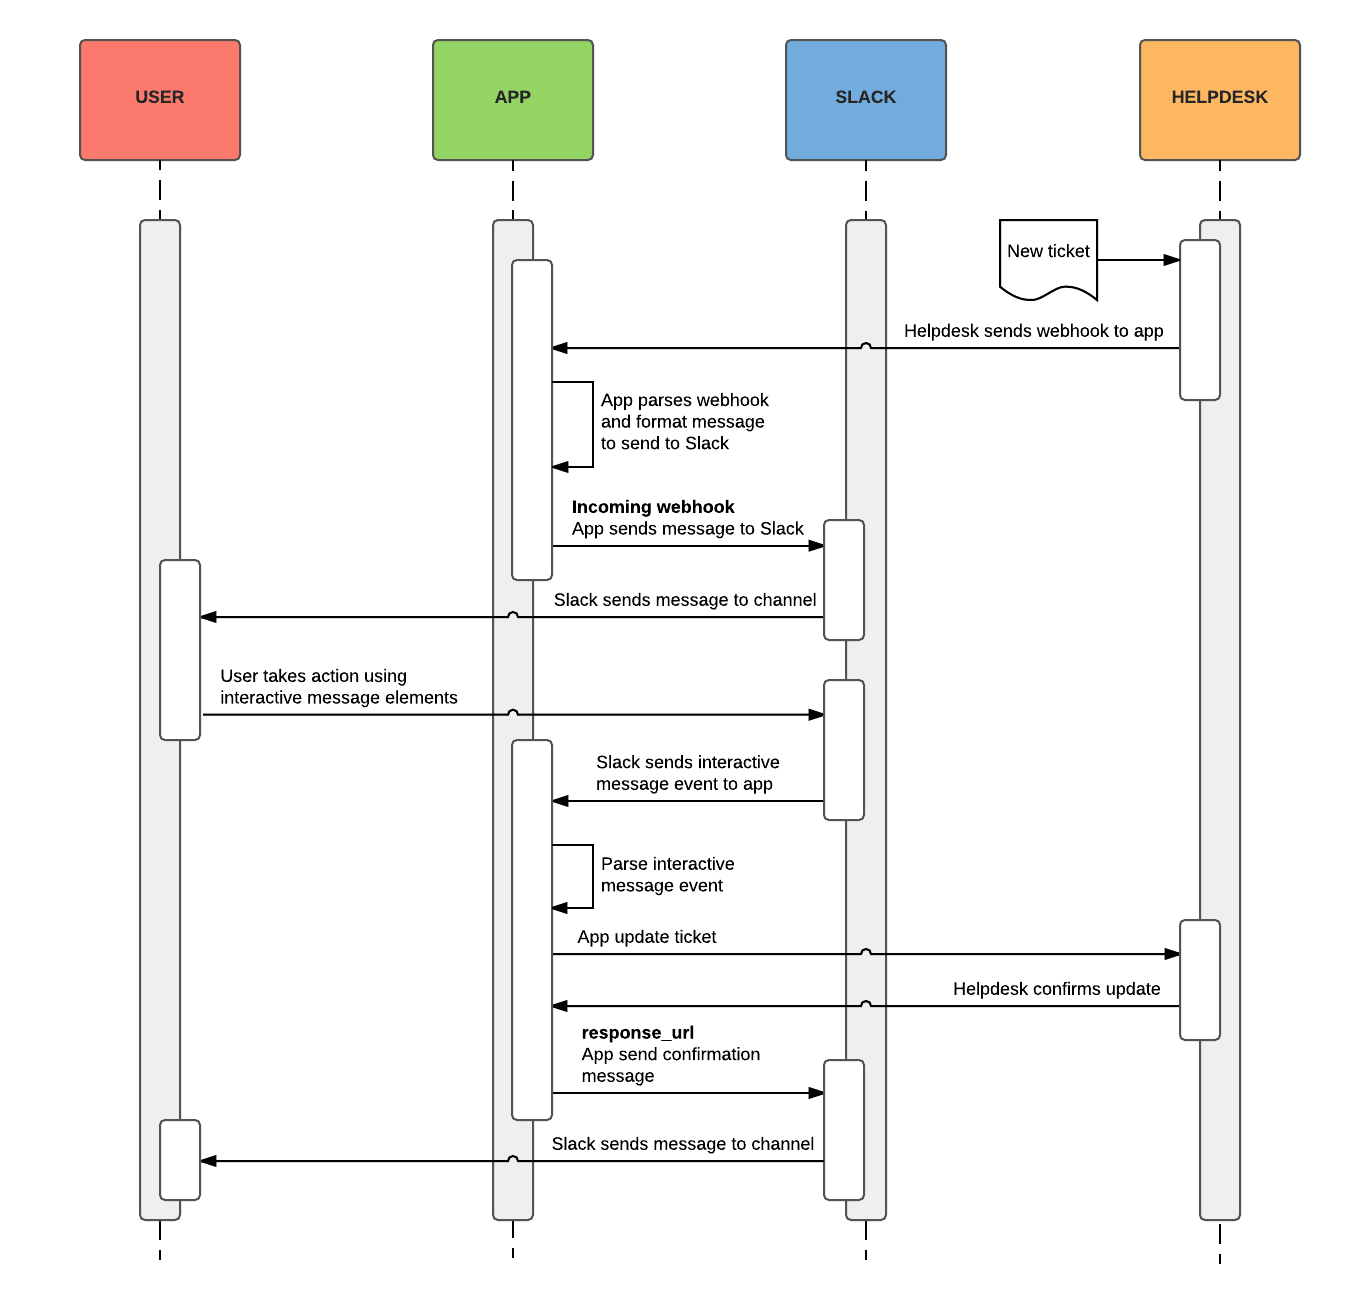 A flow diagram detailing actionable notifications